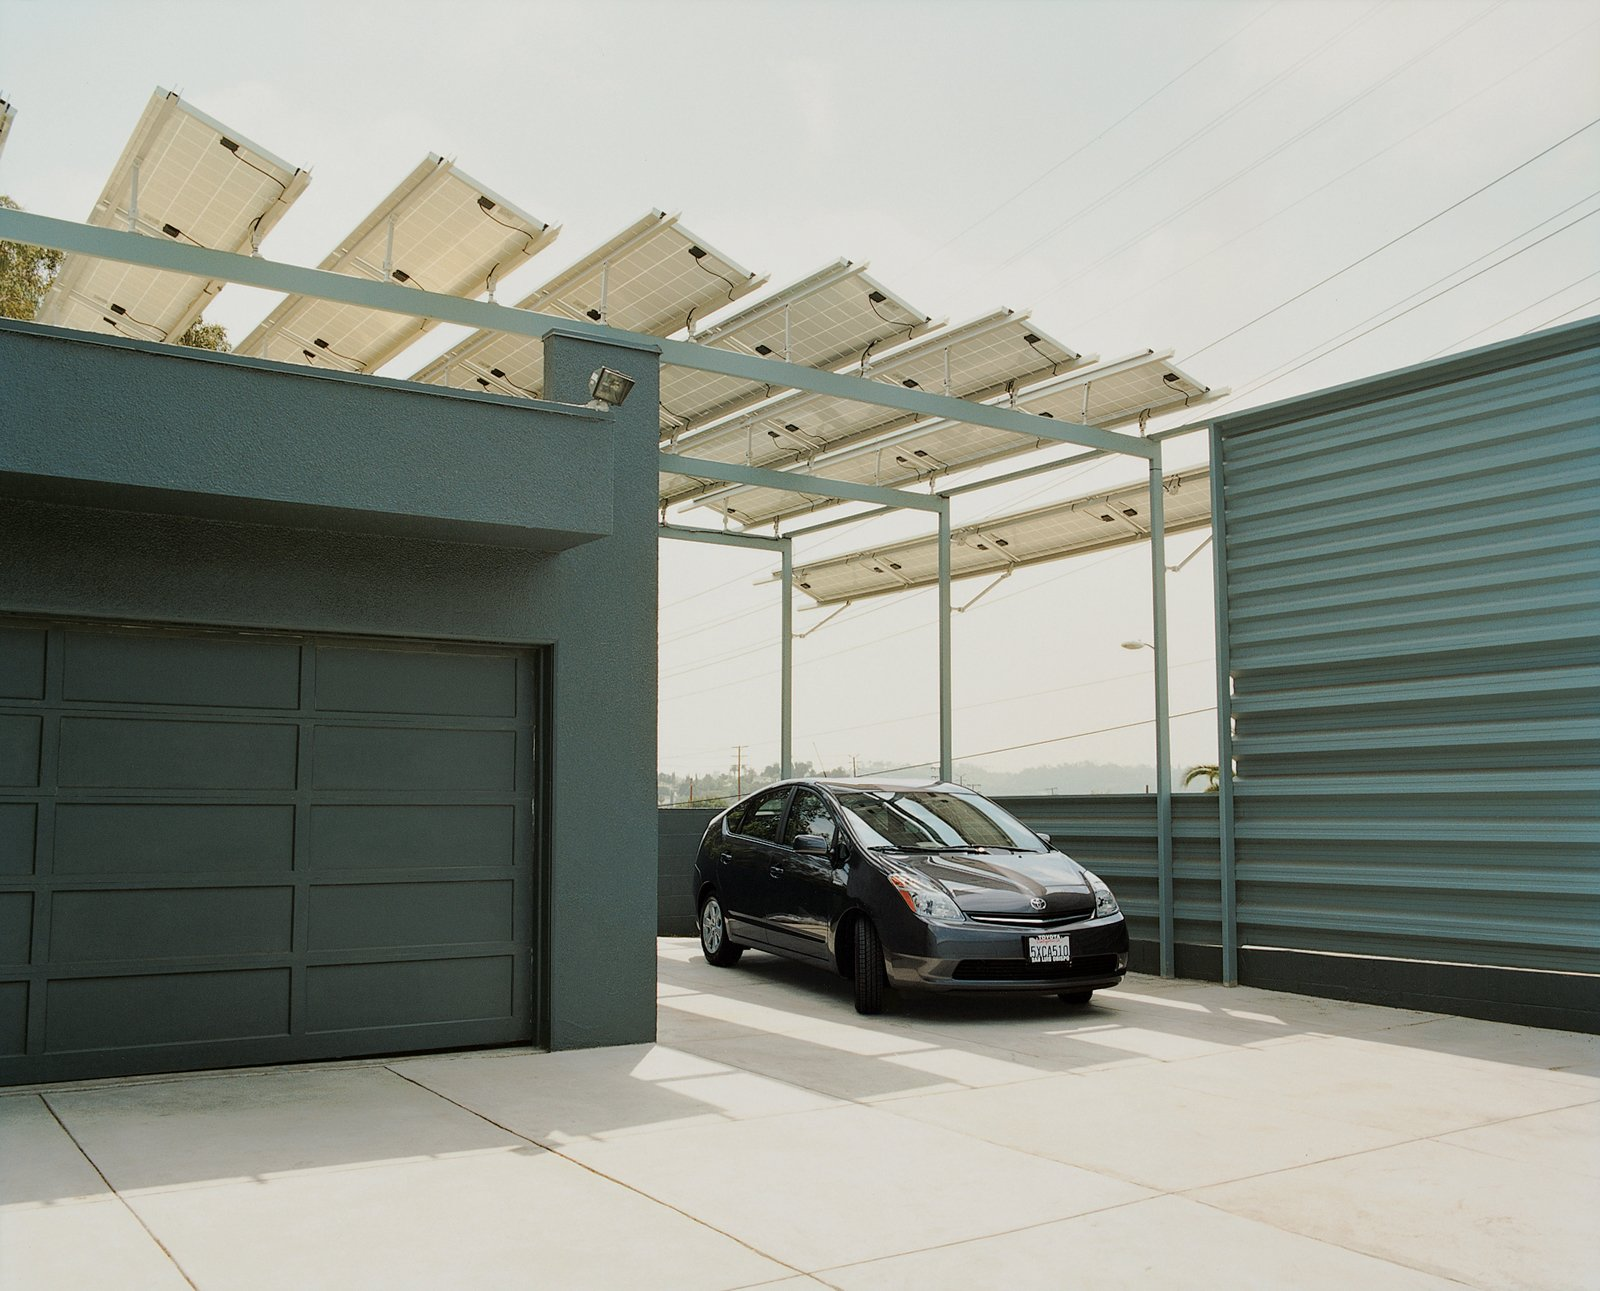 Brill's Prius sits under the solar panels, which supplies the energy for the house's lighting, air-conditioning and hot water.